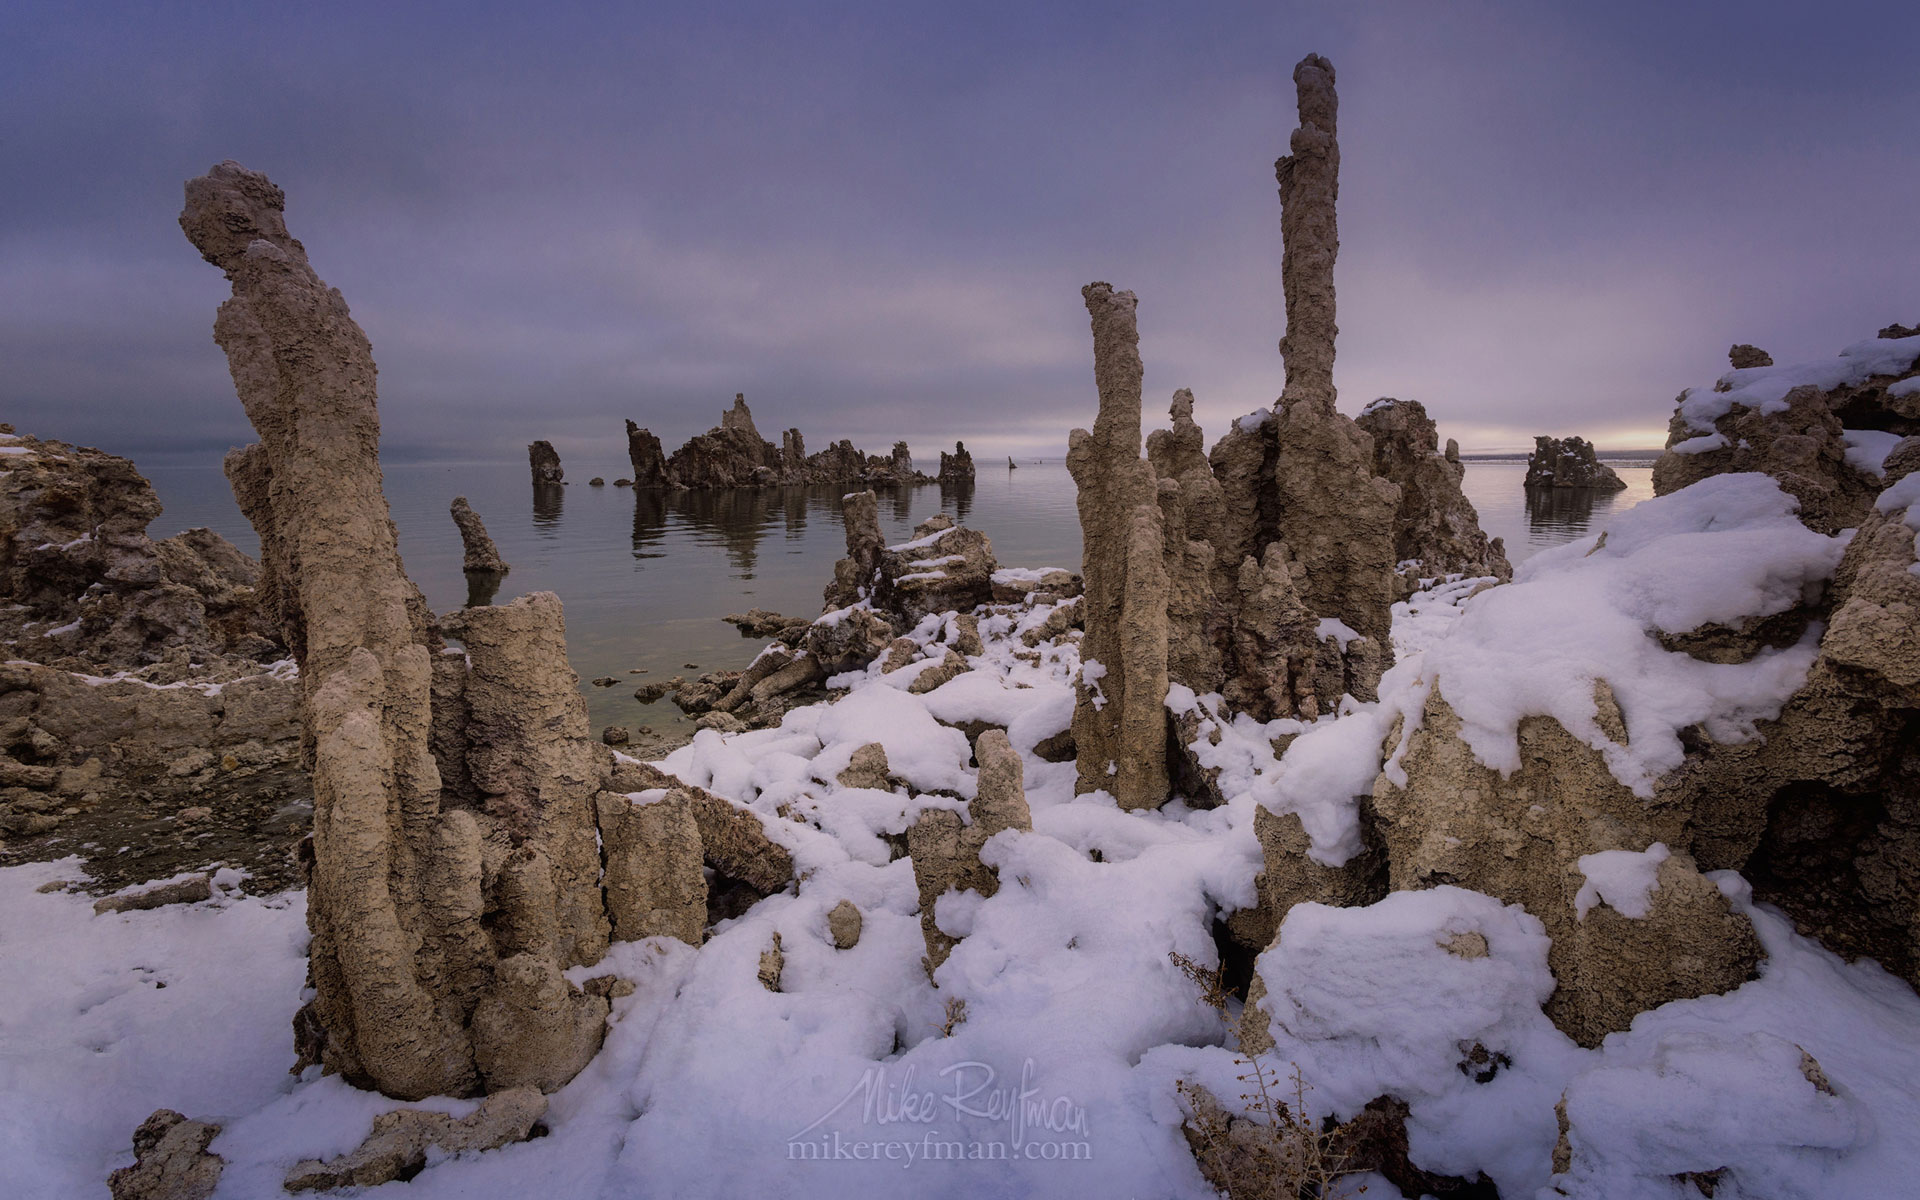 Mono Lake, Tufa State Natural Reserve, Eastern Sierra, California, USA ML1-MRN3X0755 - Mono Lake Tufa State Natural Reserve, Eastern Sierra, California - Mike Reyfman Photography